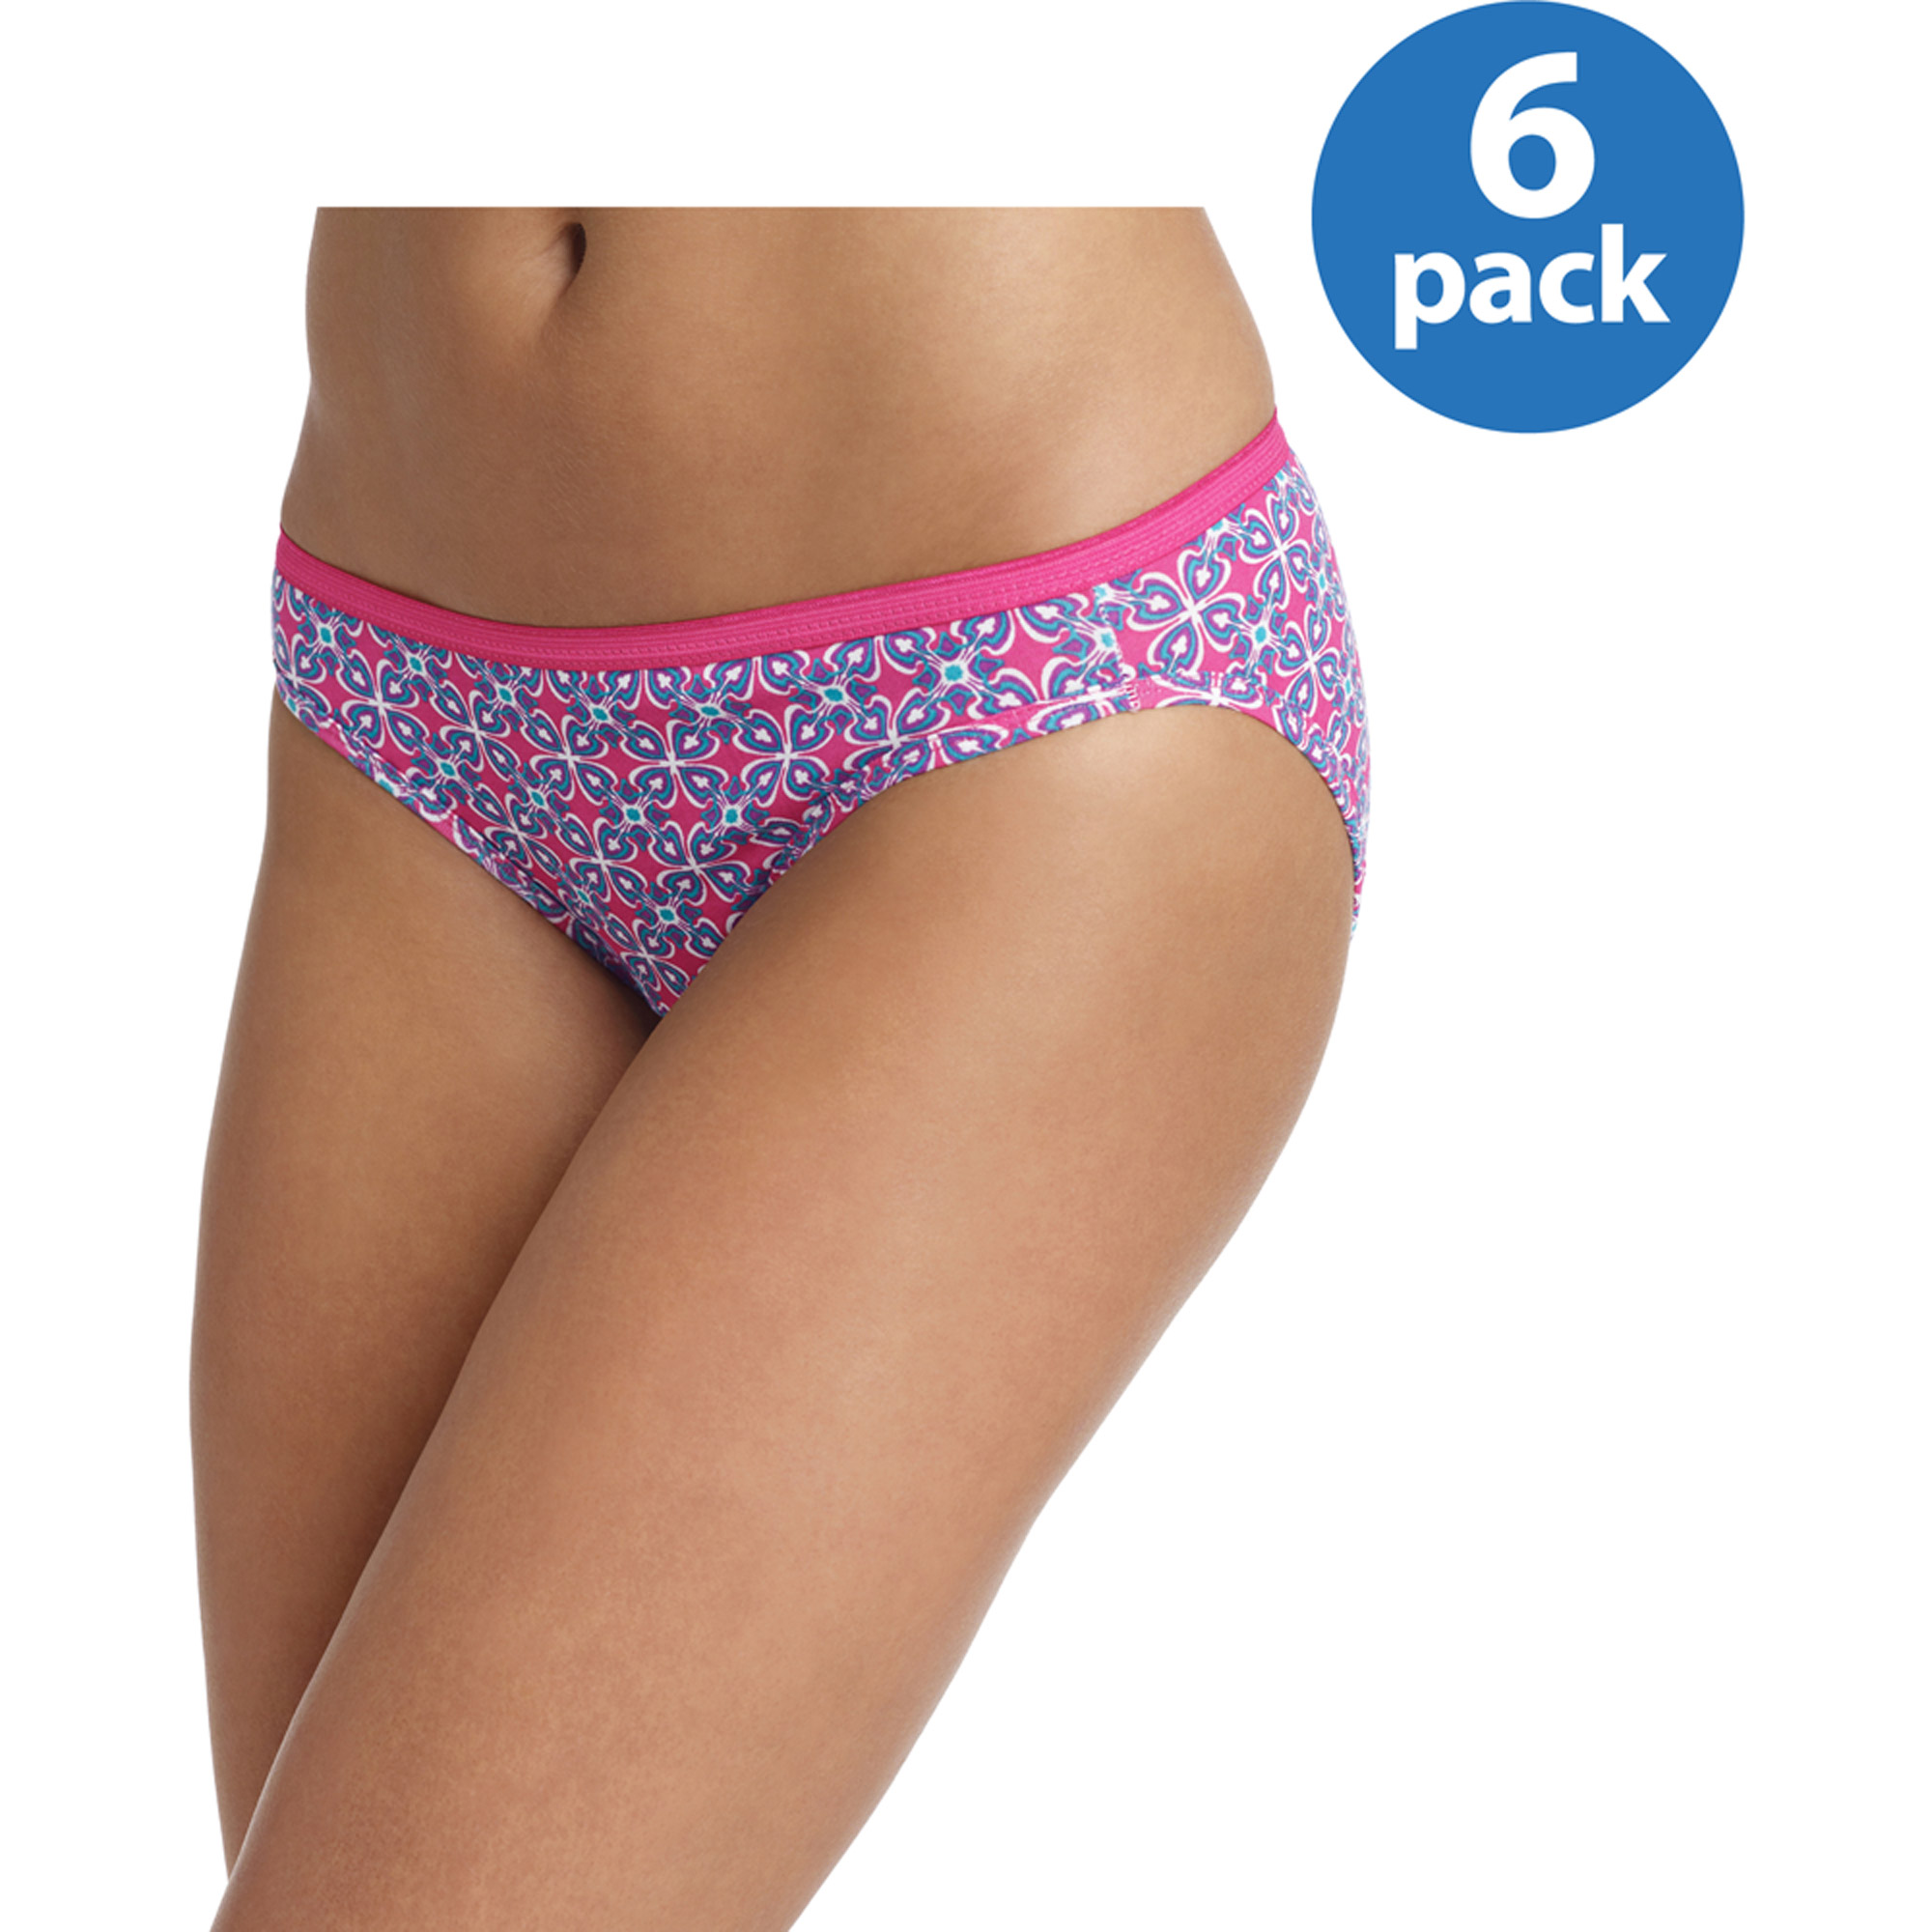 Hanes Women's No Ride Up Cotton Bikini Panties 6-Pack